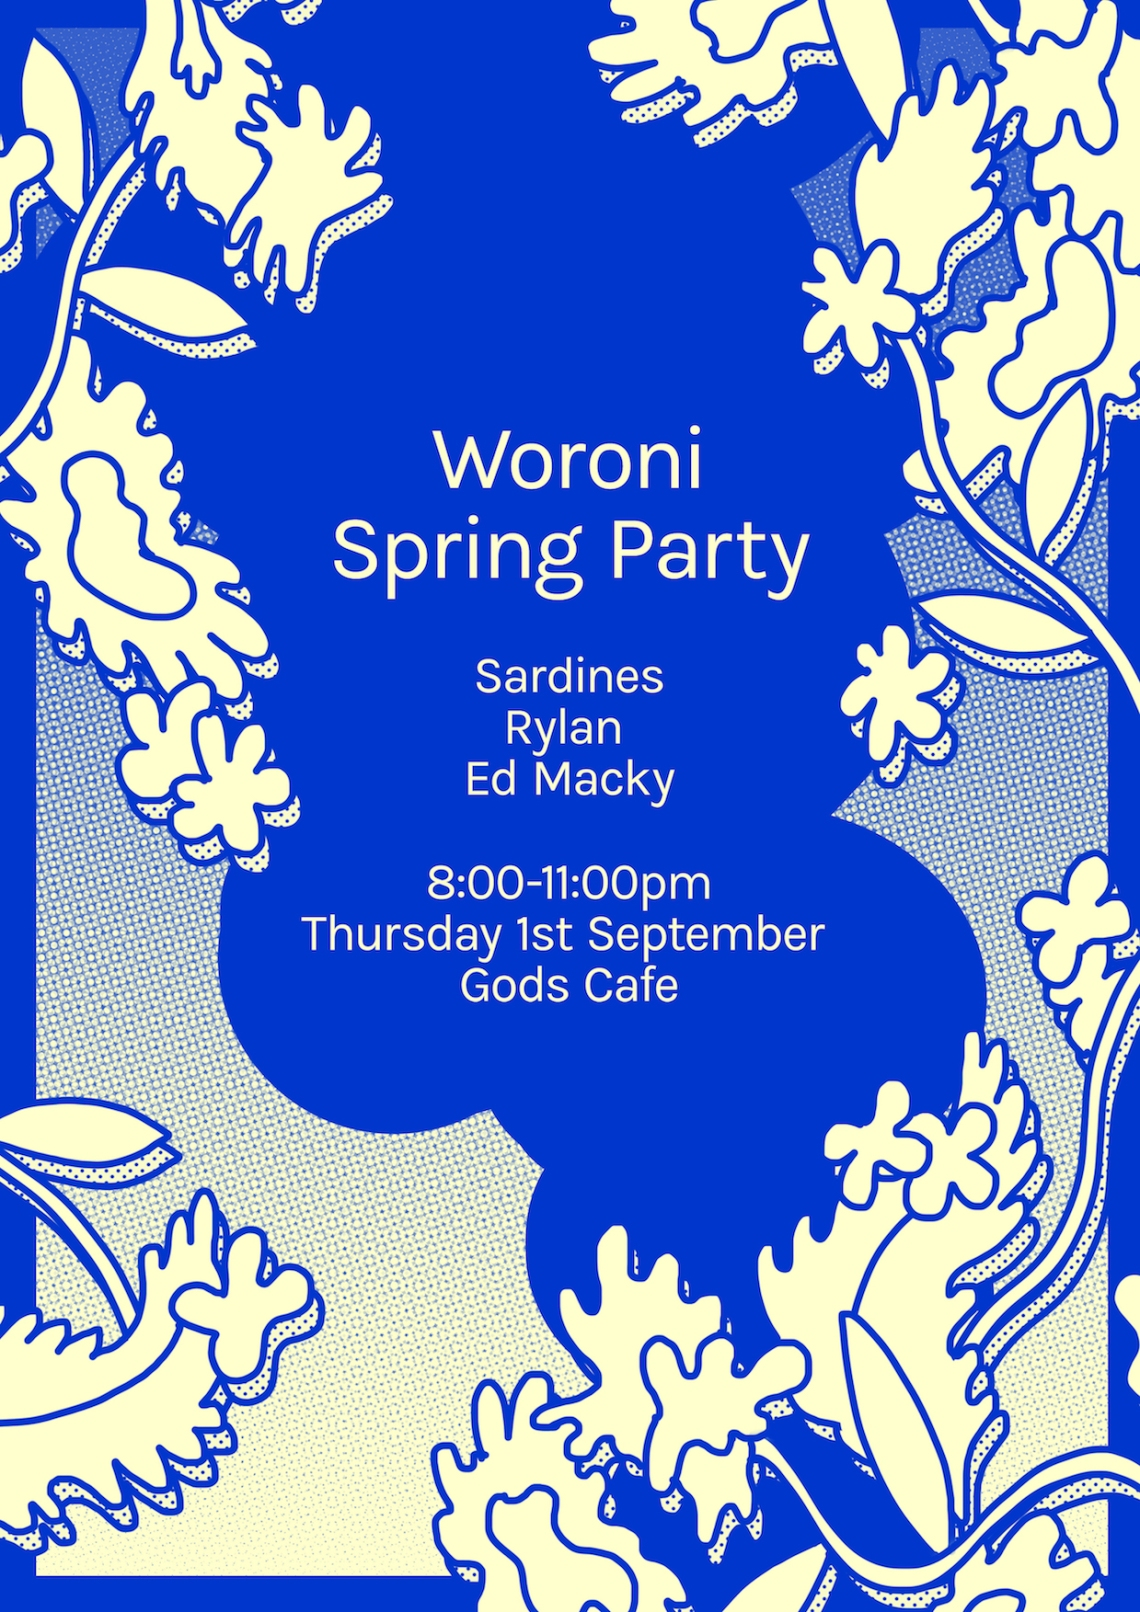 sprongparty